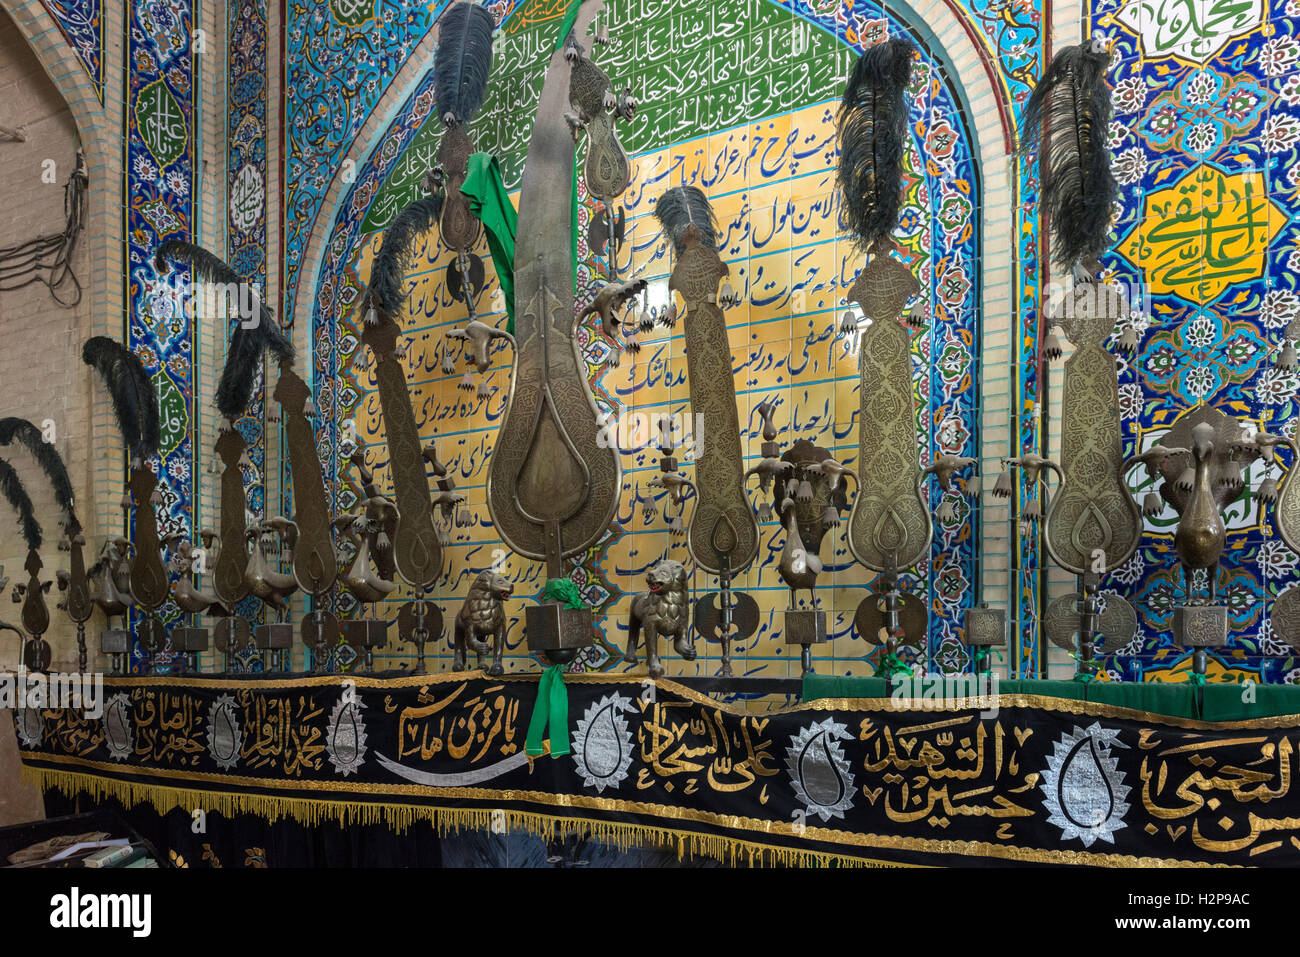 Kerman, Bazaar Shop, Alam Used For Ashura Processions - Stock Image